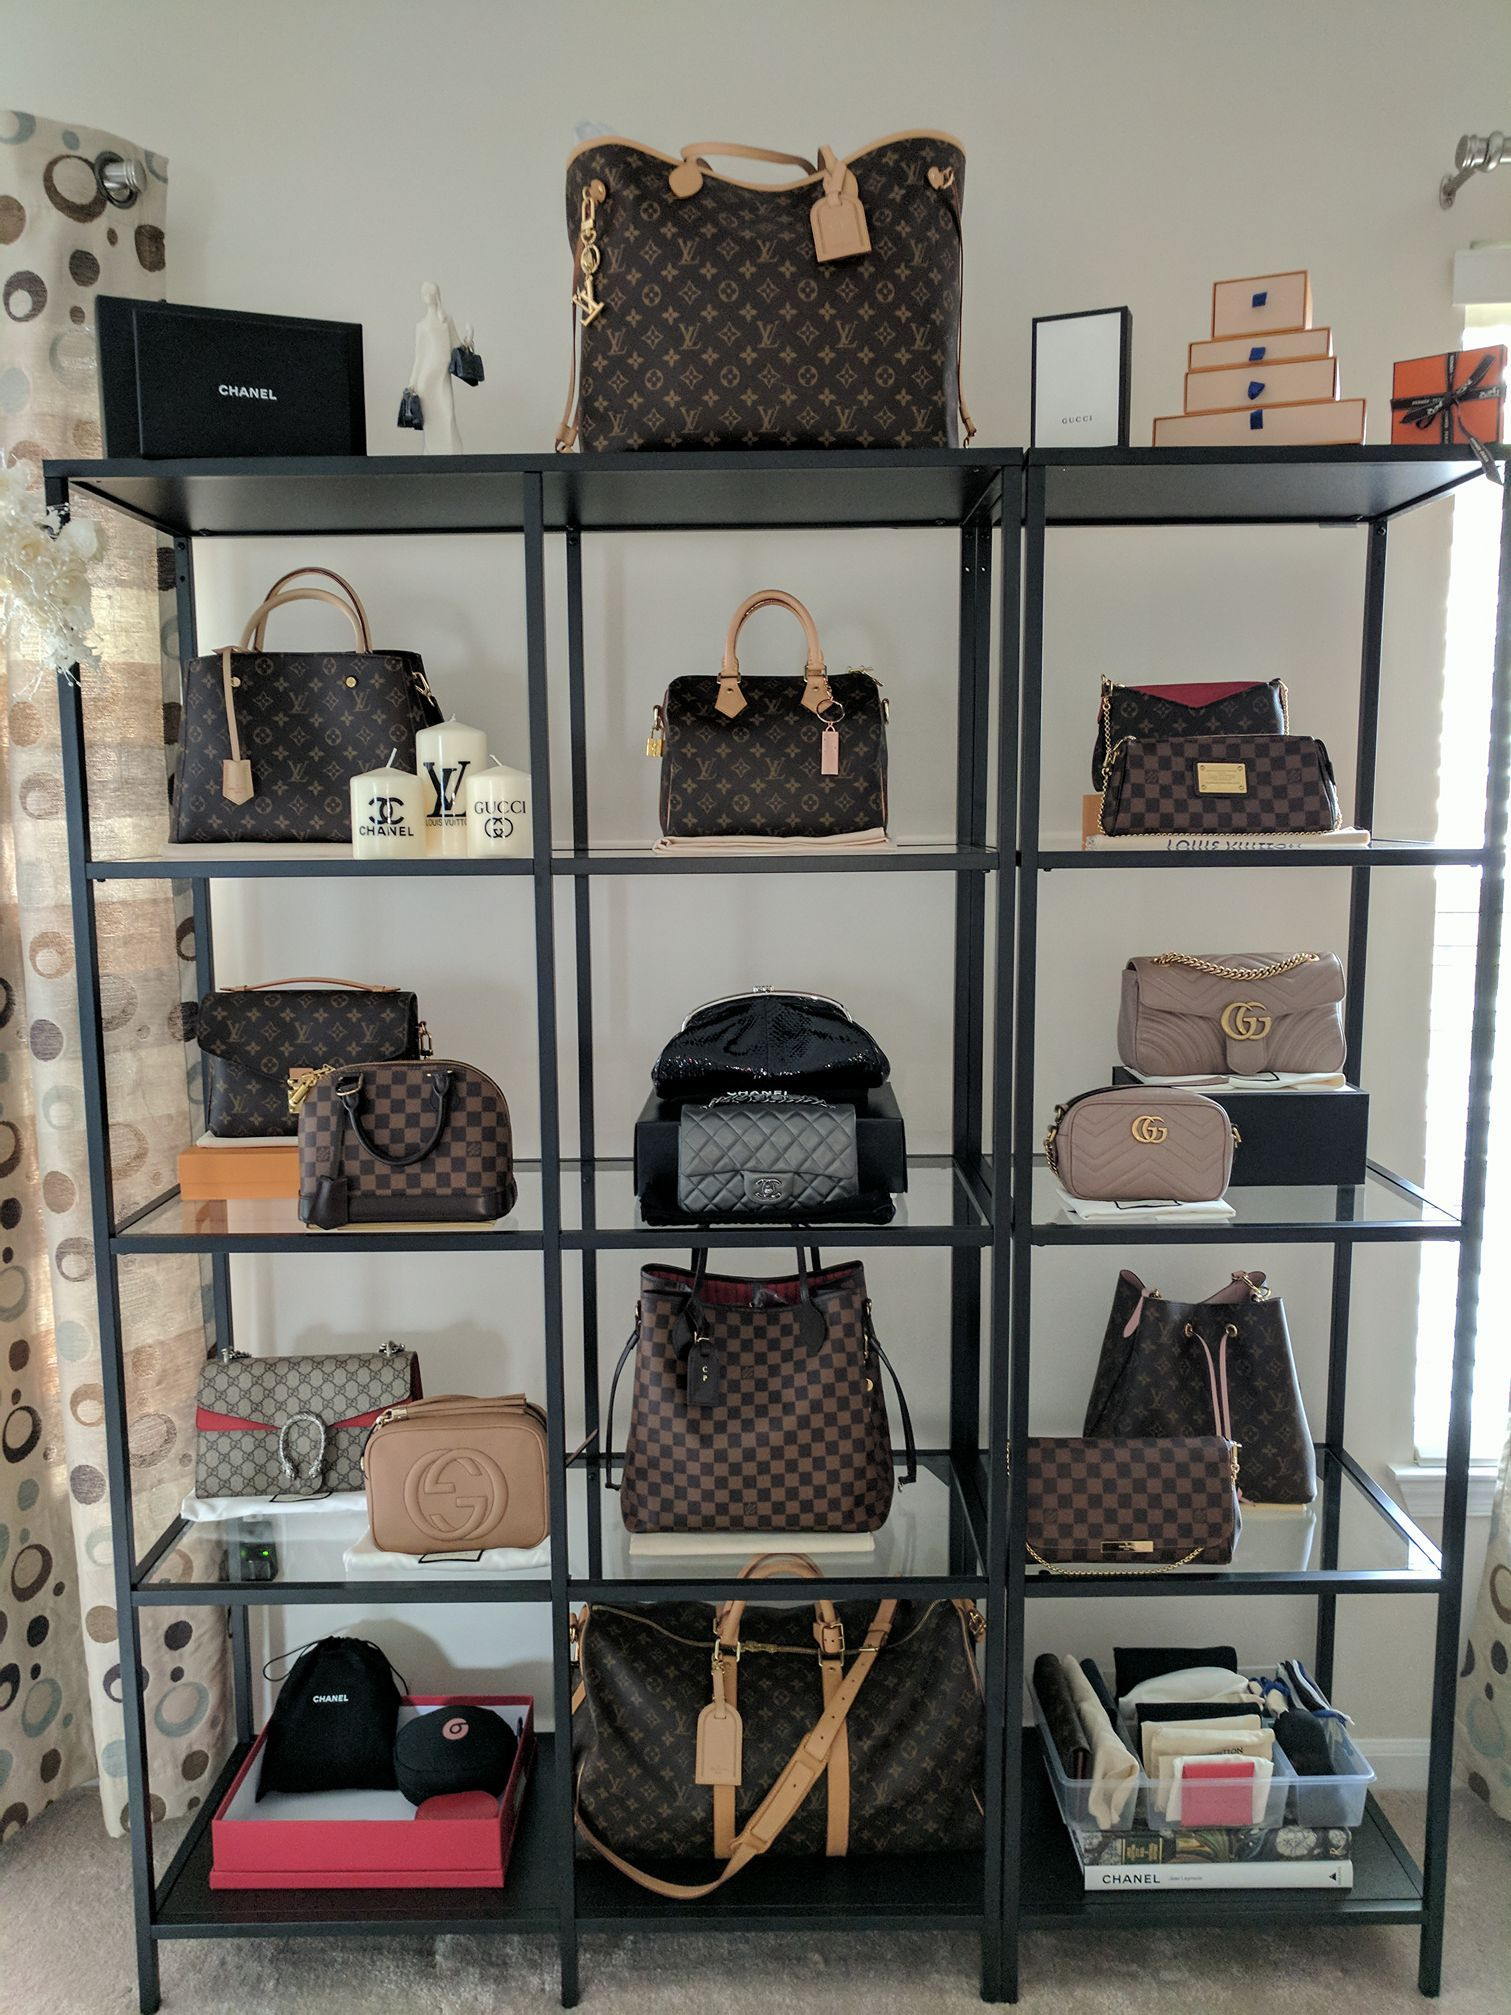 Love These Shelves For Displaying All Your Bags!   Fashionable